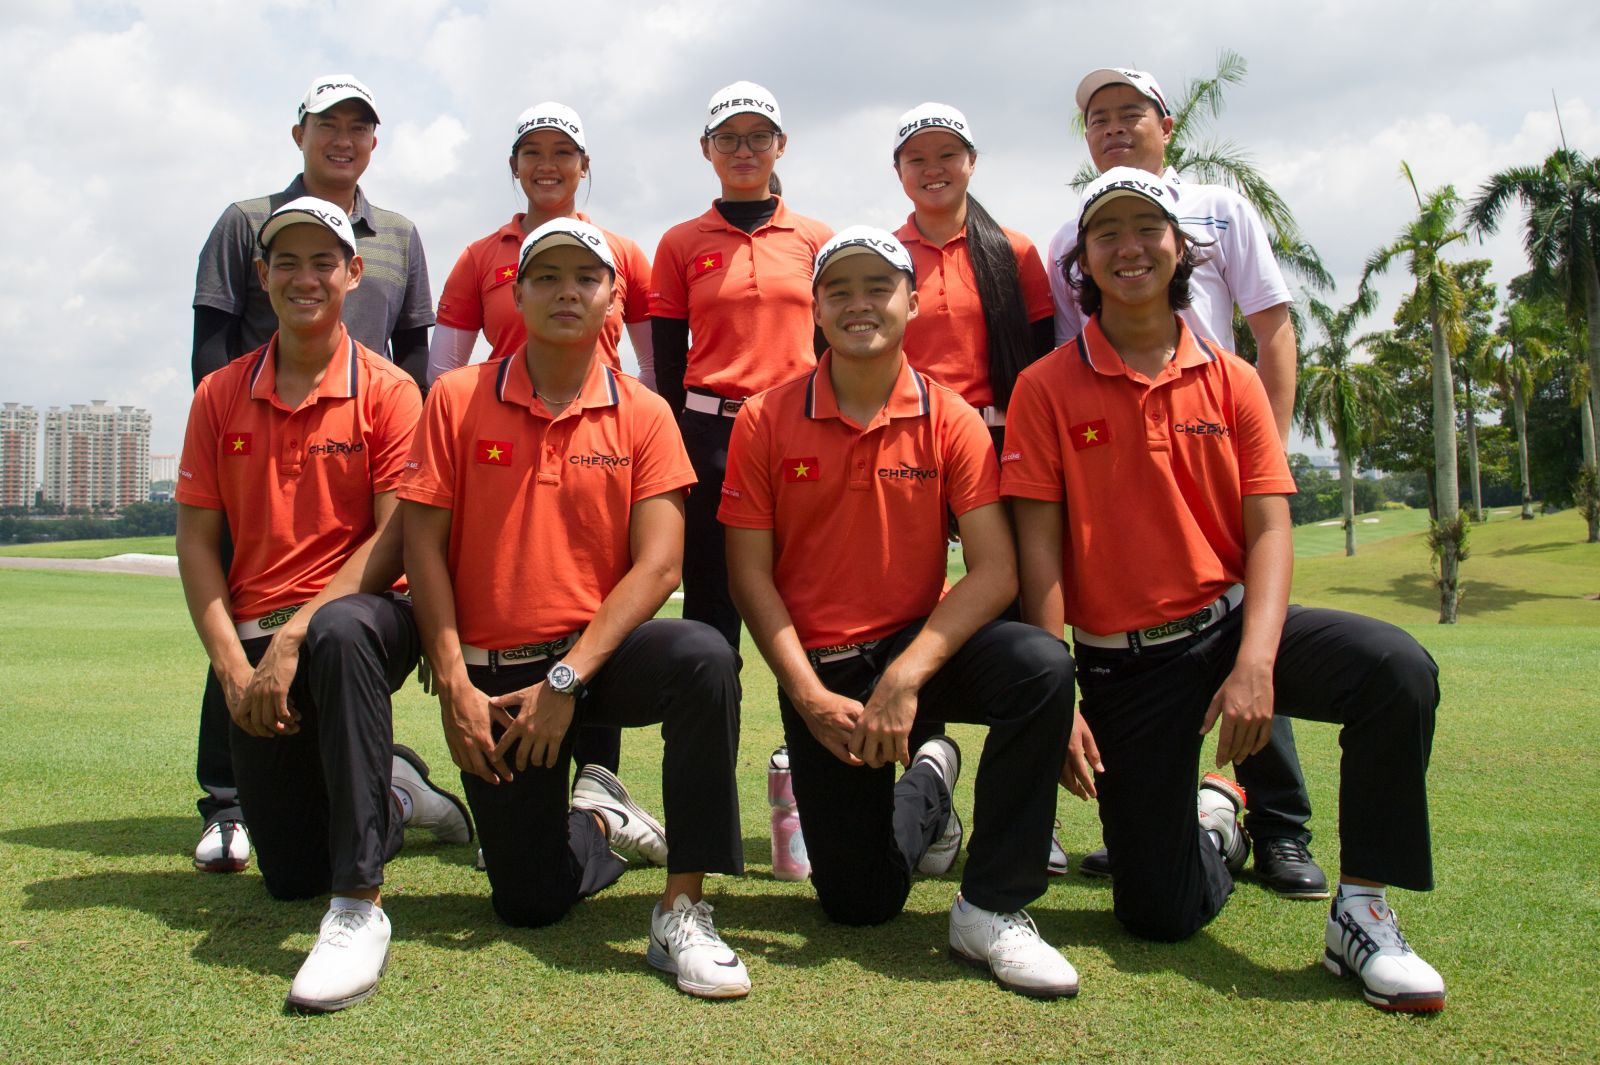 HS Golf and Chervo sponsor Vietnam Golf team in uniform at SEA Games 29